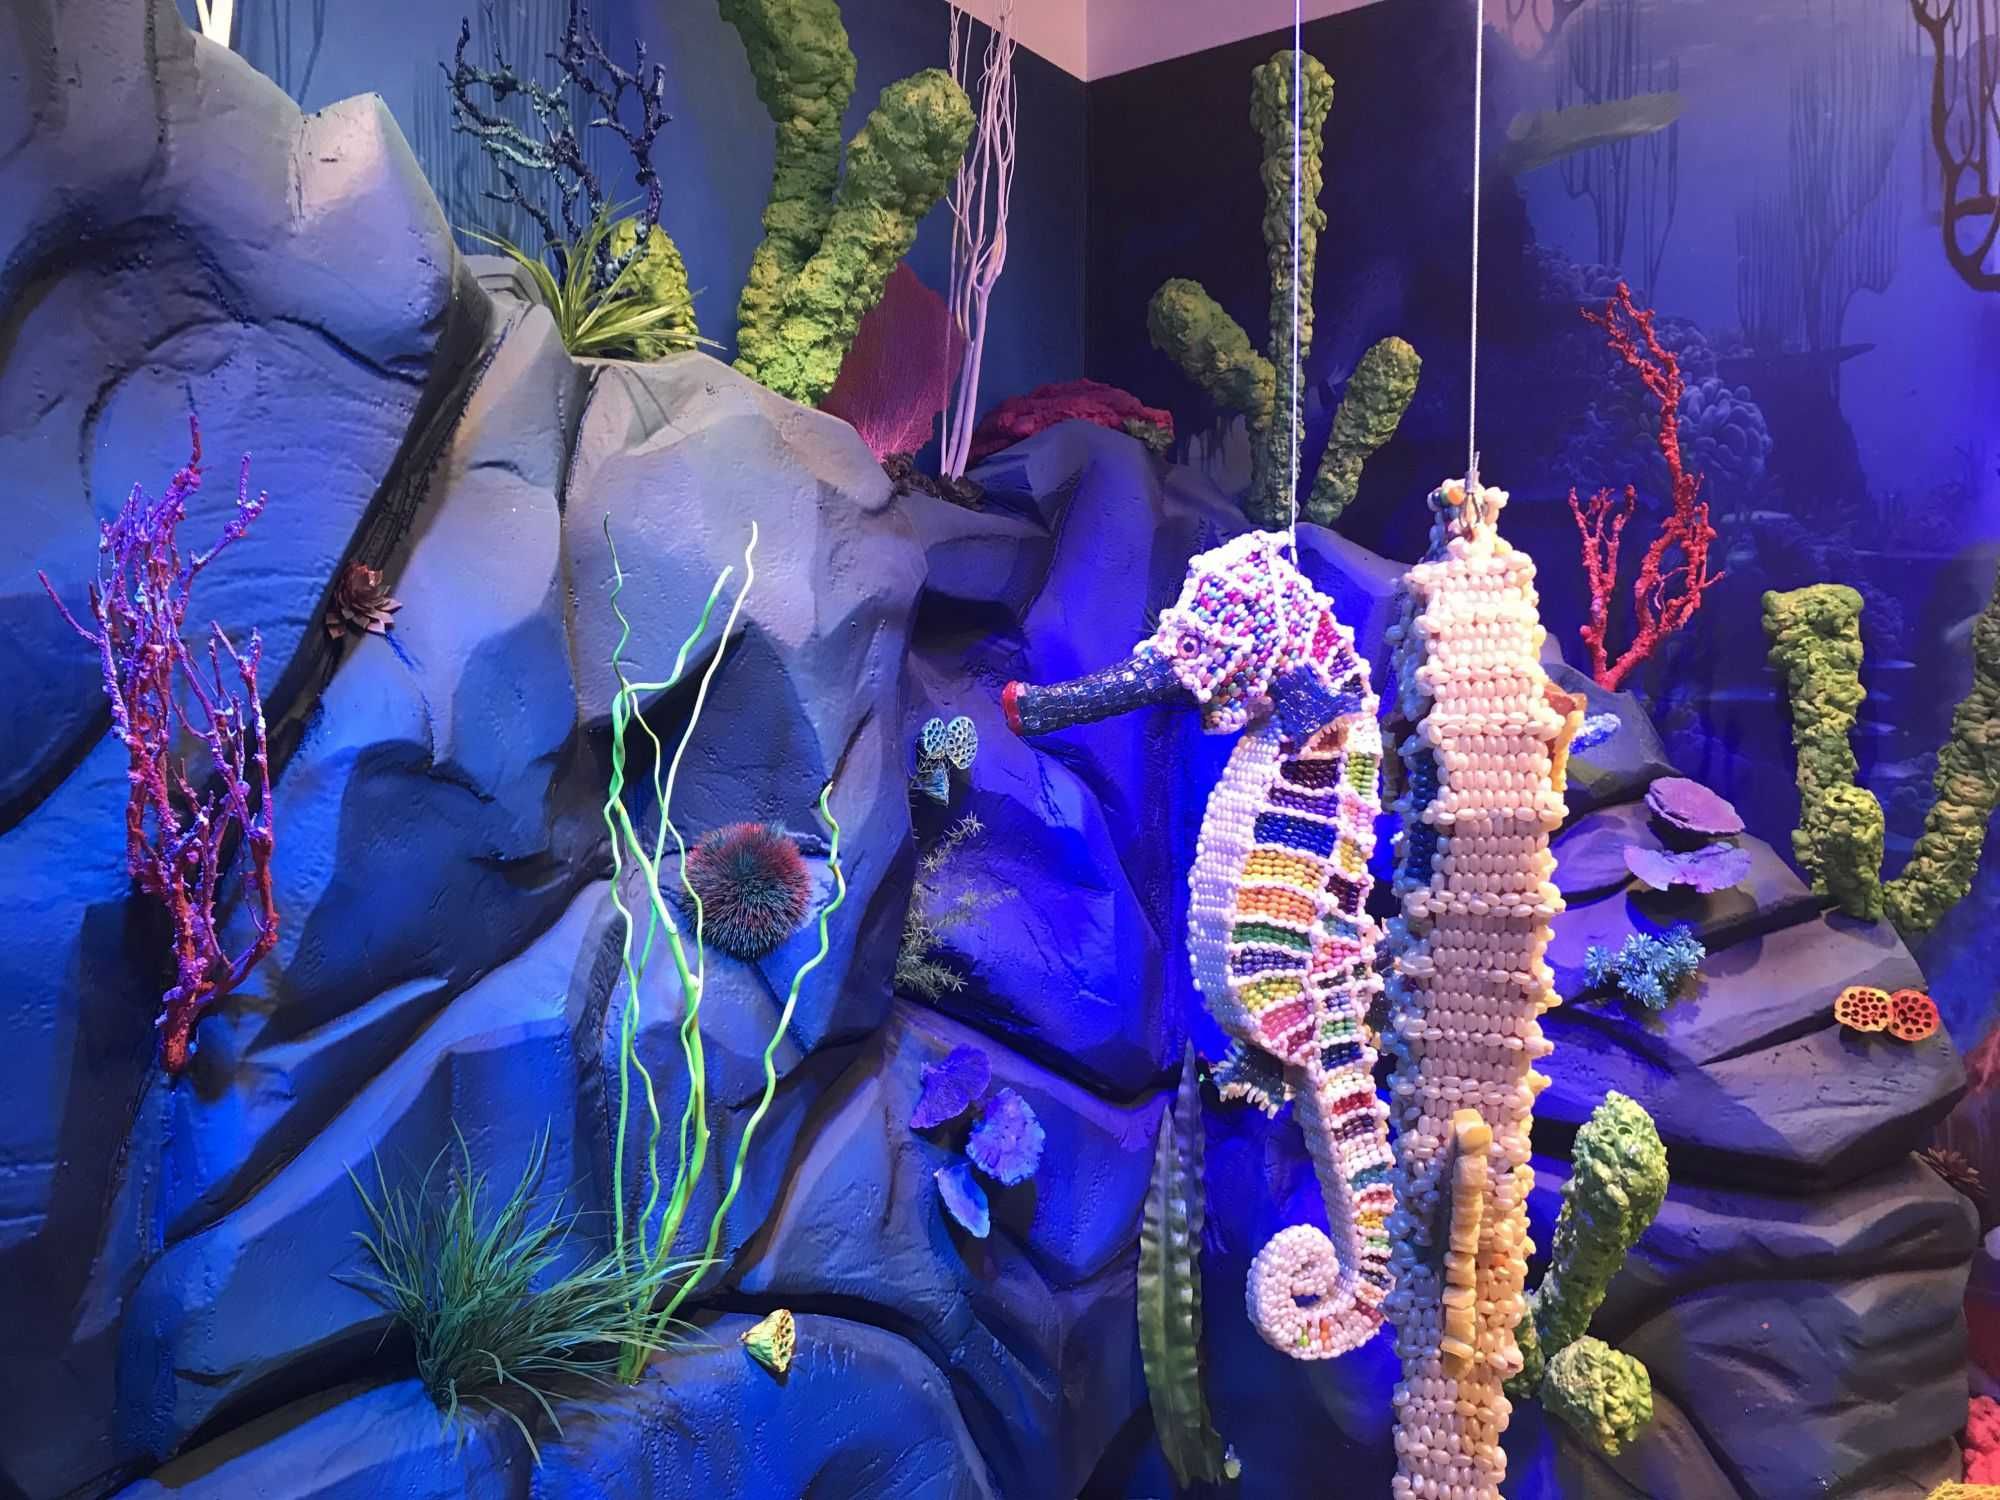 Decorated+with+sea+organisms+and+plant+life%2C+the+ocean+room+features+a+hammerhead+shark+with+over+11%2C800+pieces+of+candy.+